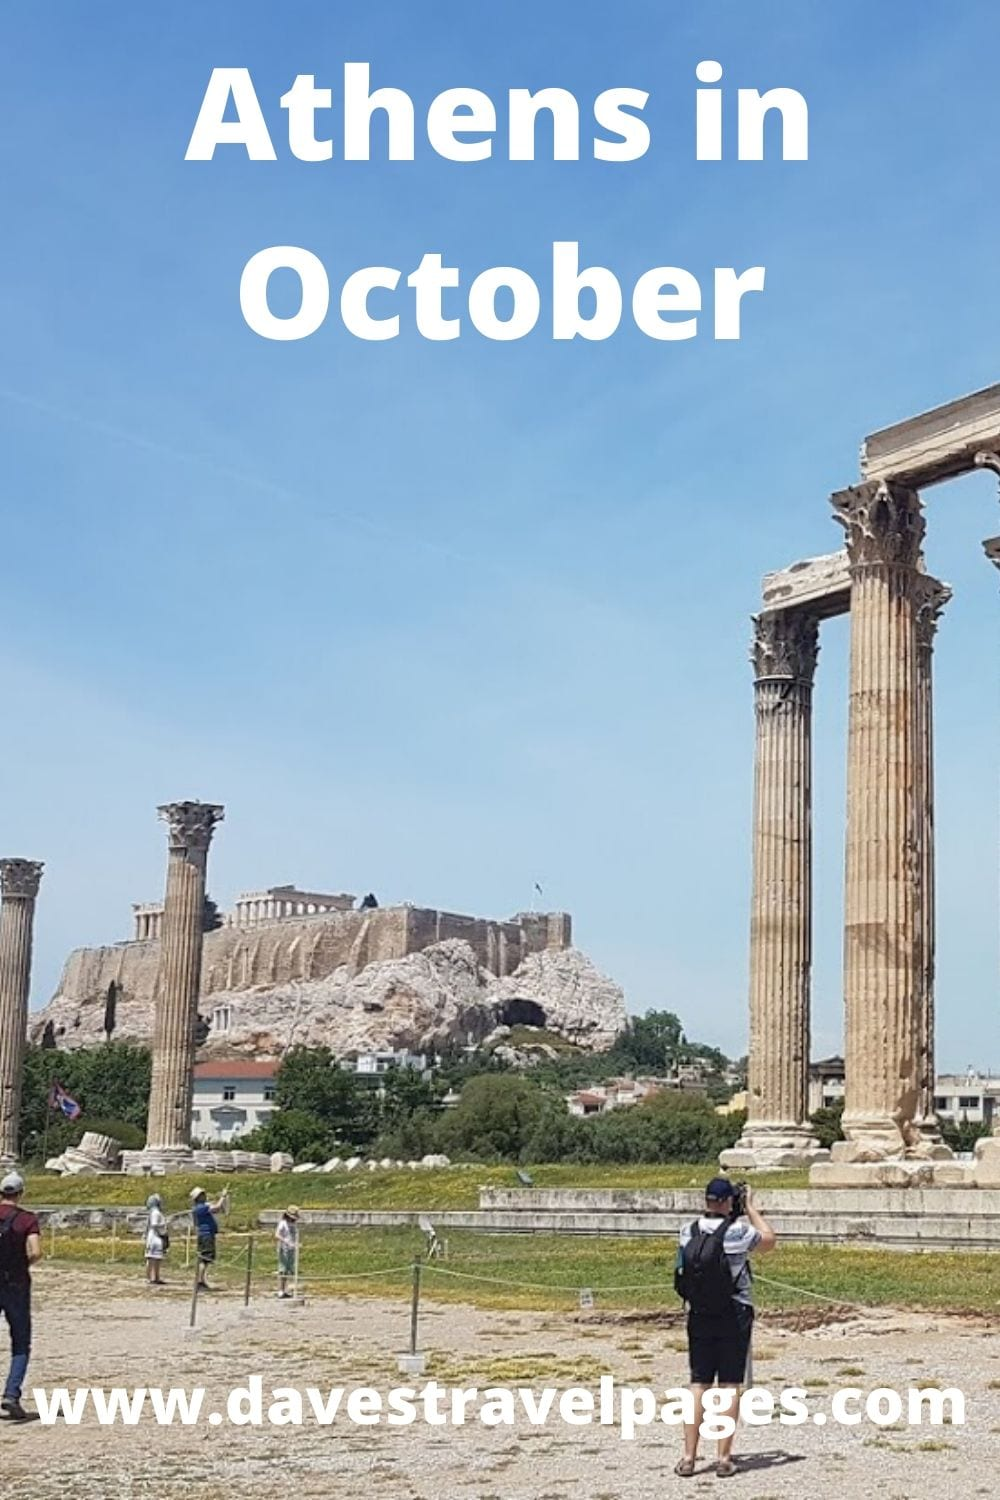 Best things to do in Athens in October